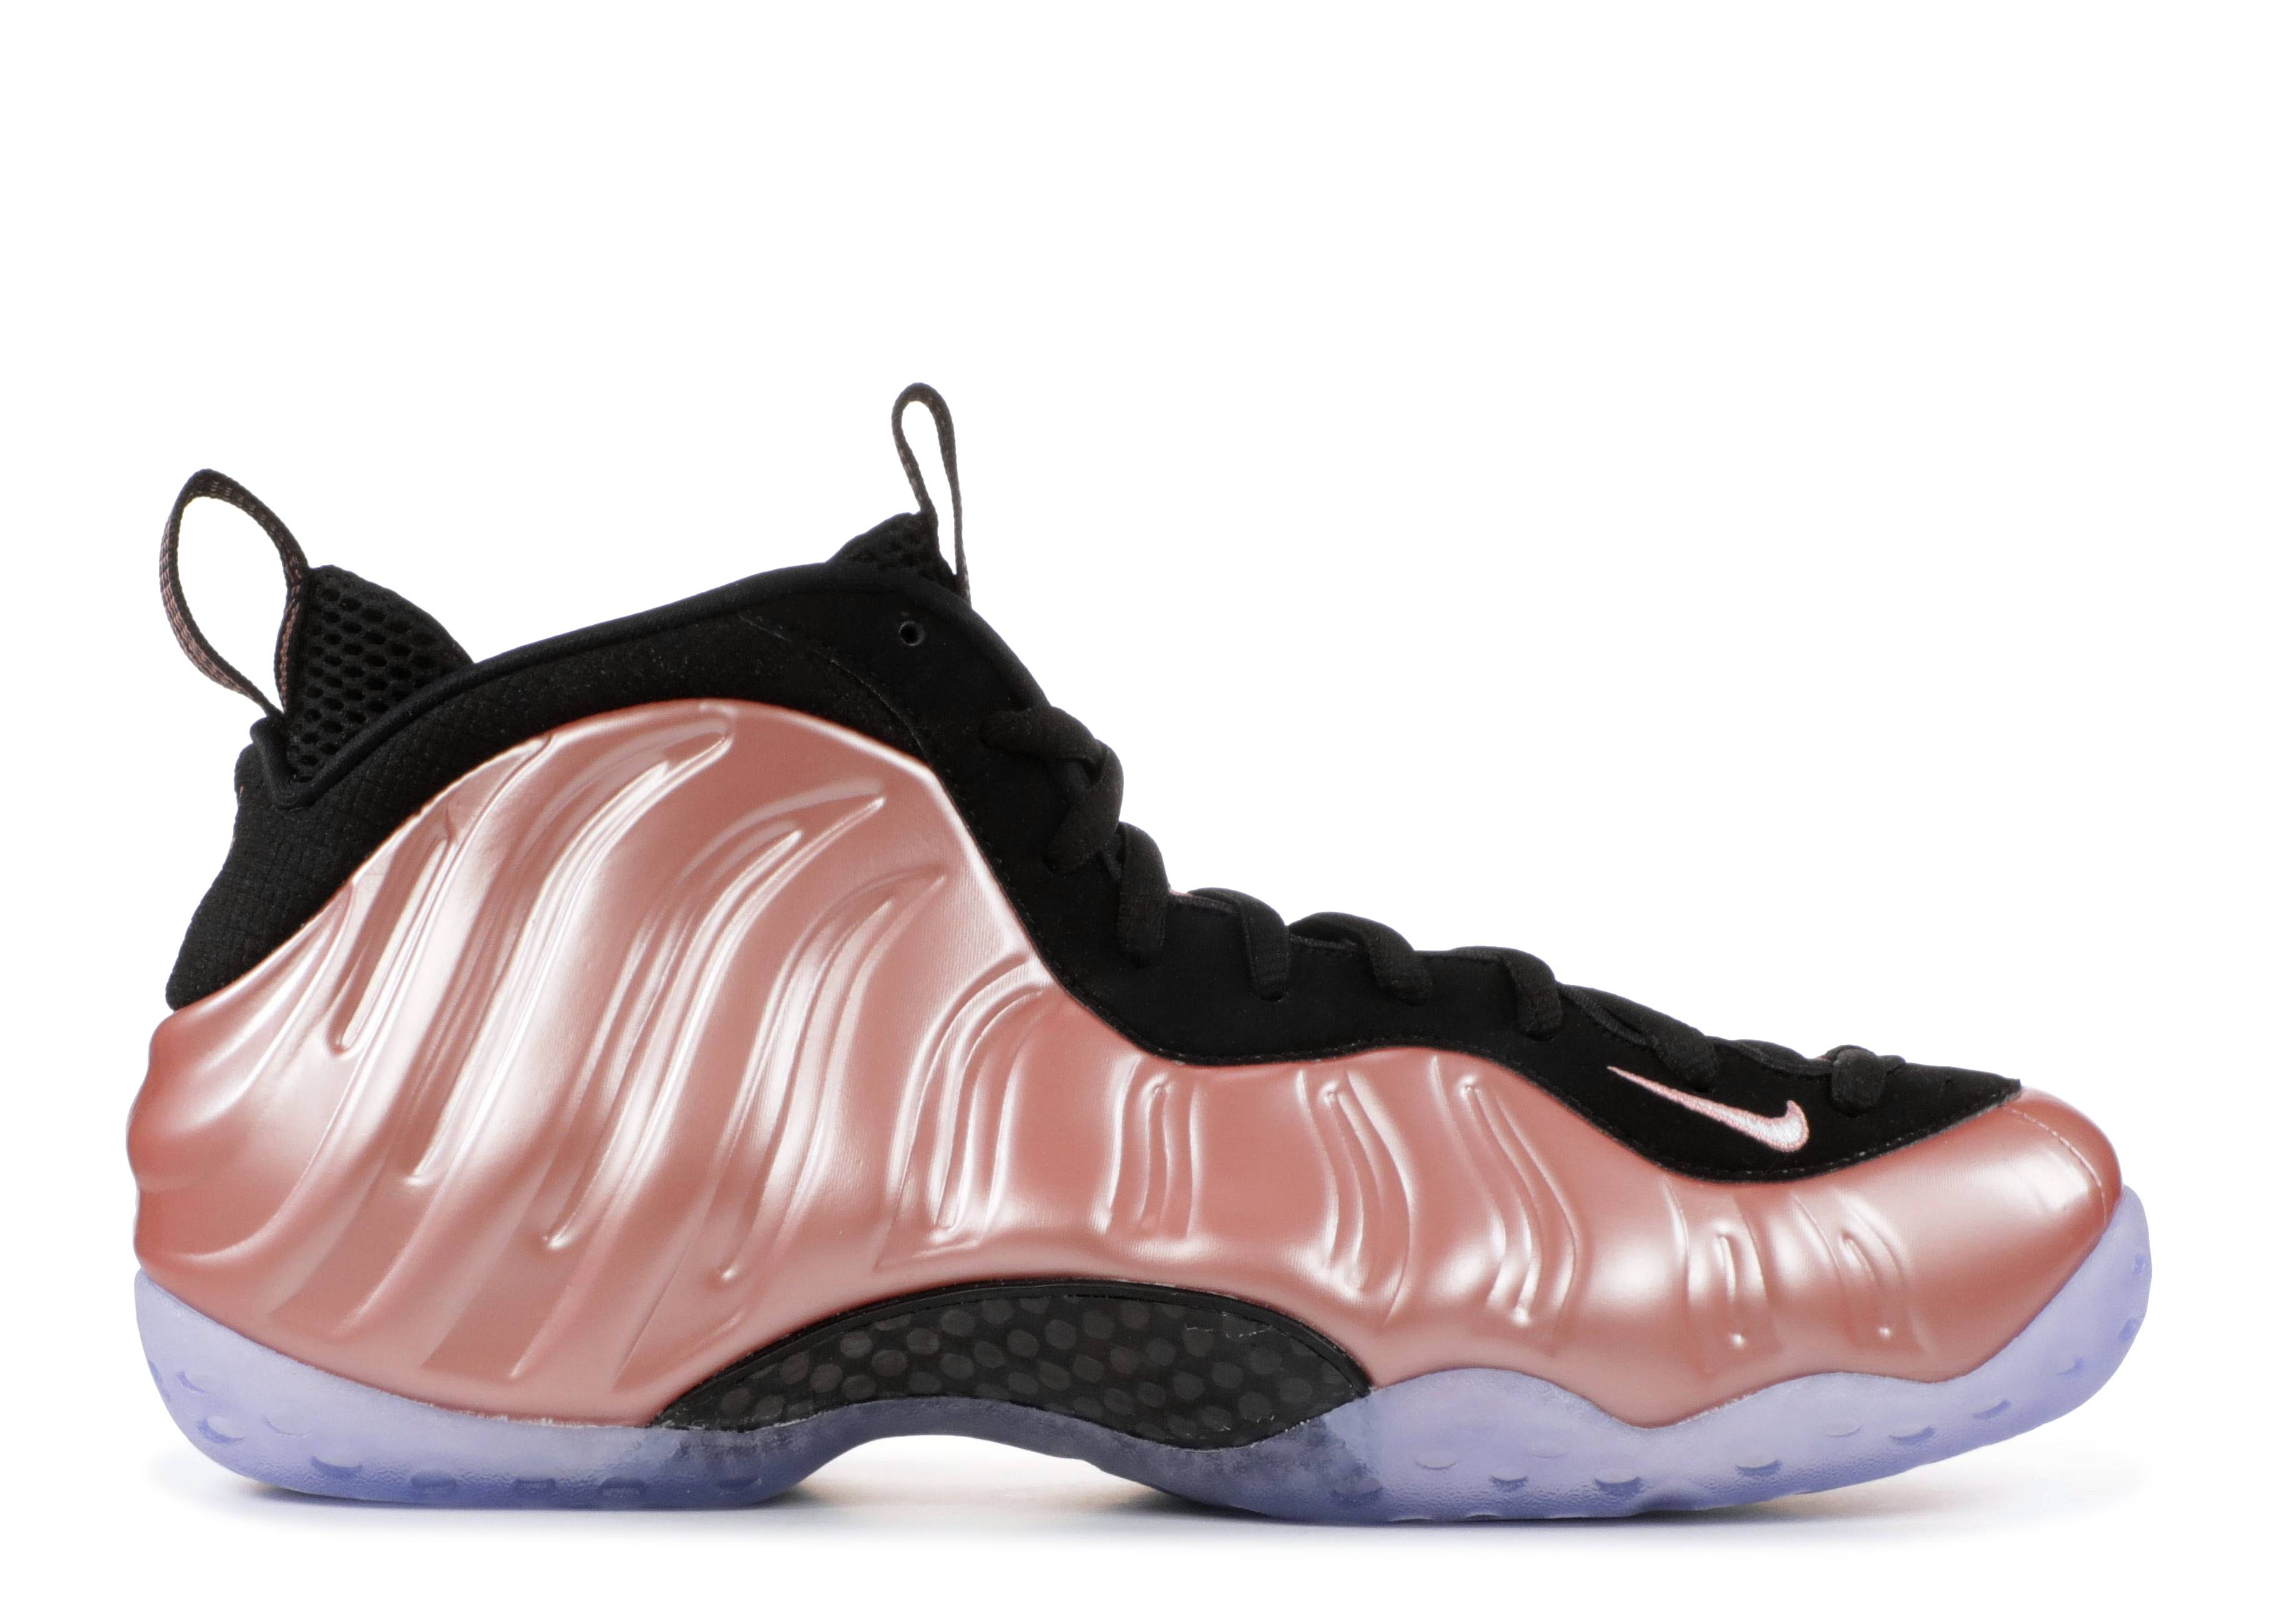 Nike Air Foamposite One PRM Fighter Jet Camo ...YouTube